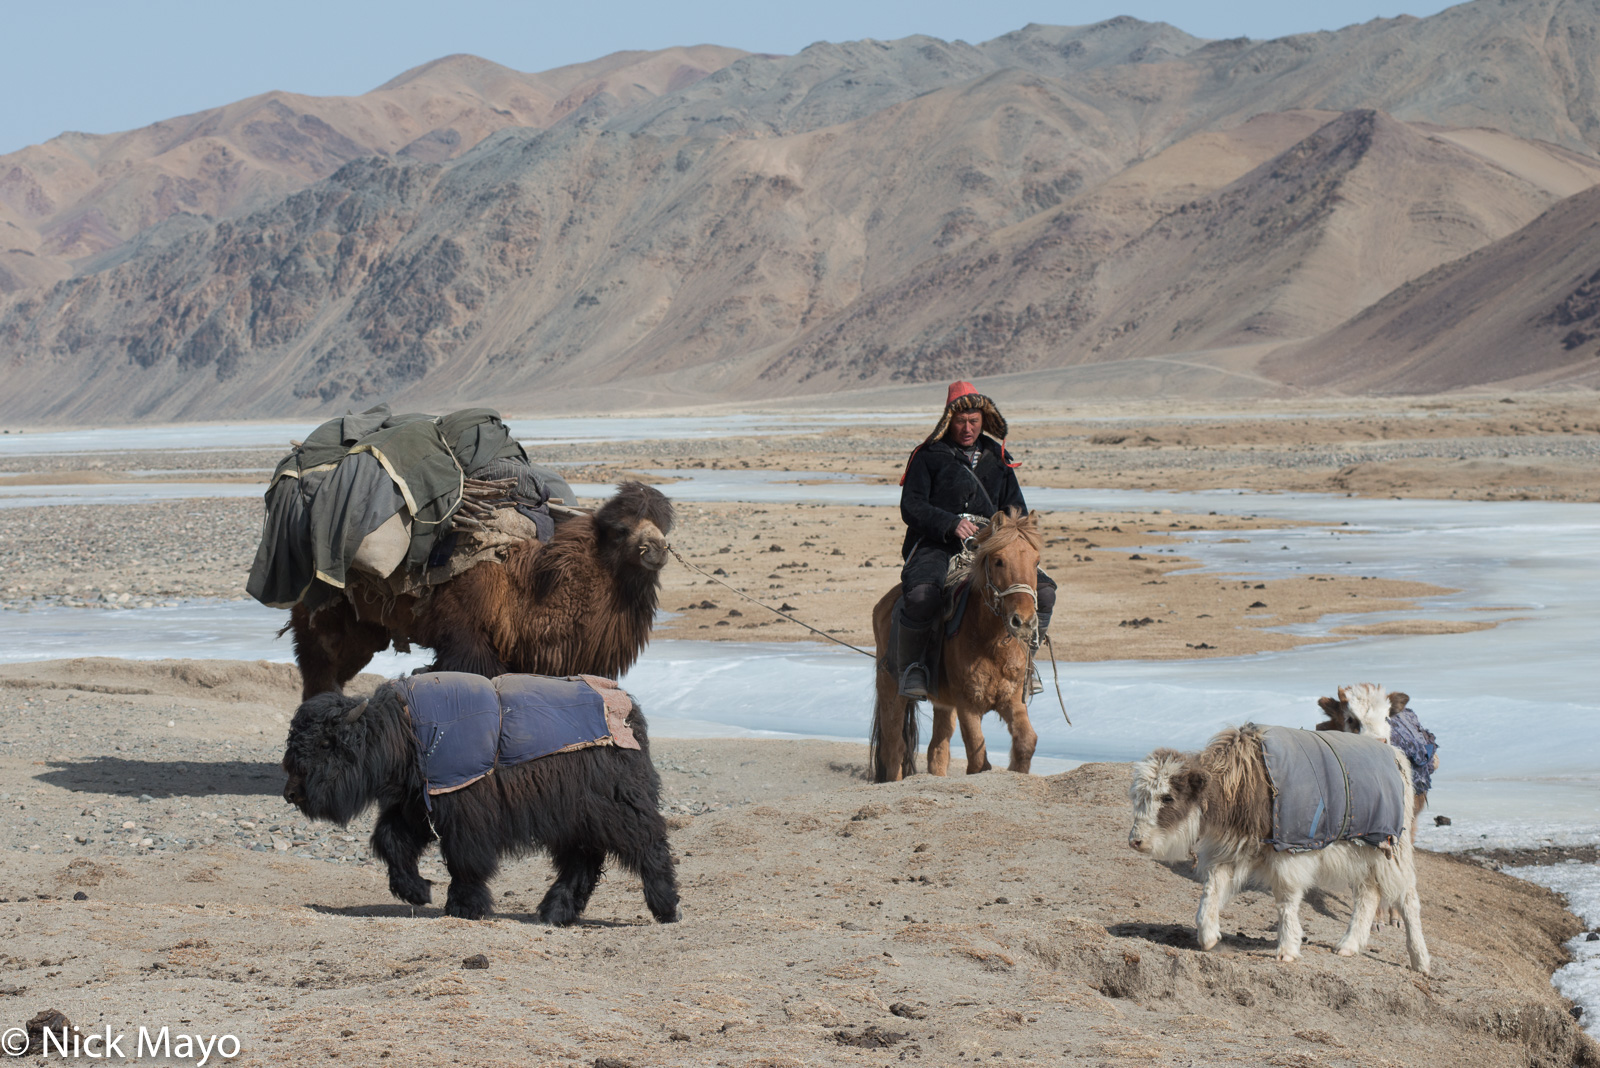 Bayan-Ölgii, Camel, Horse, Kazakh, Mongolia, Pack Animal, Yak, photo